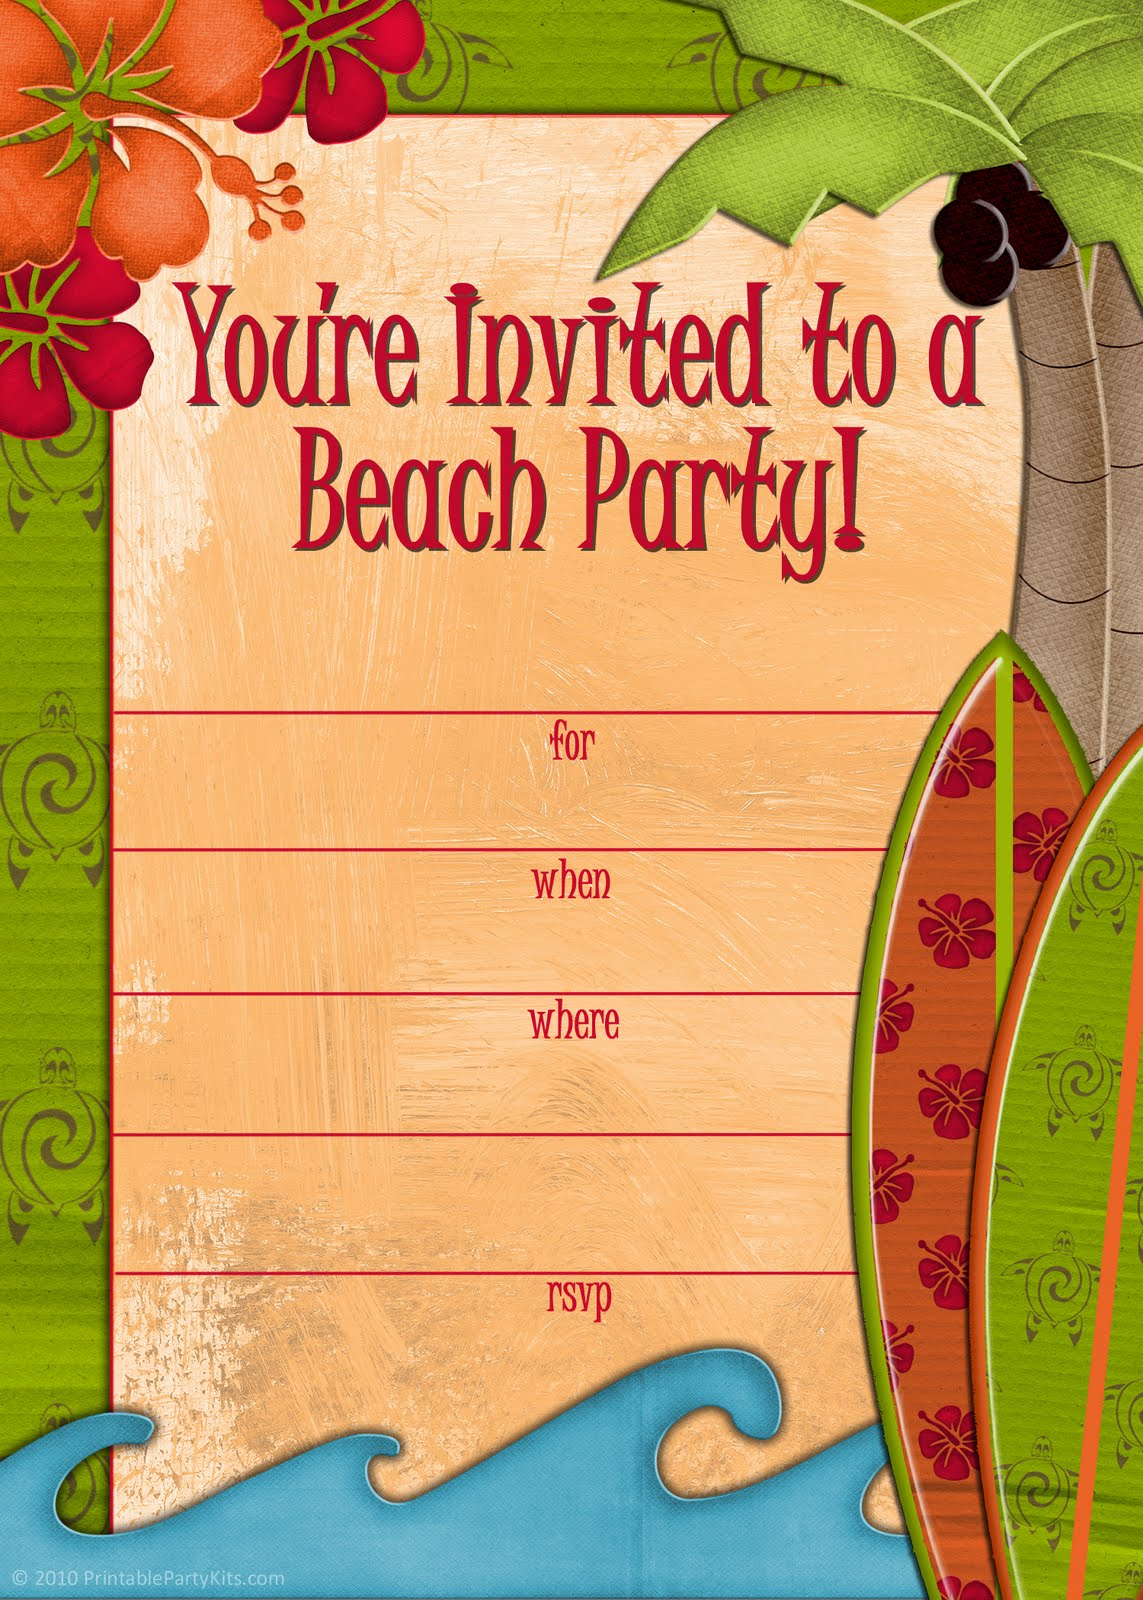 5 Images of Beach Party Invitations Printable Free